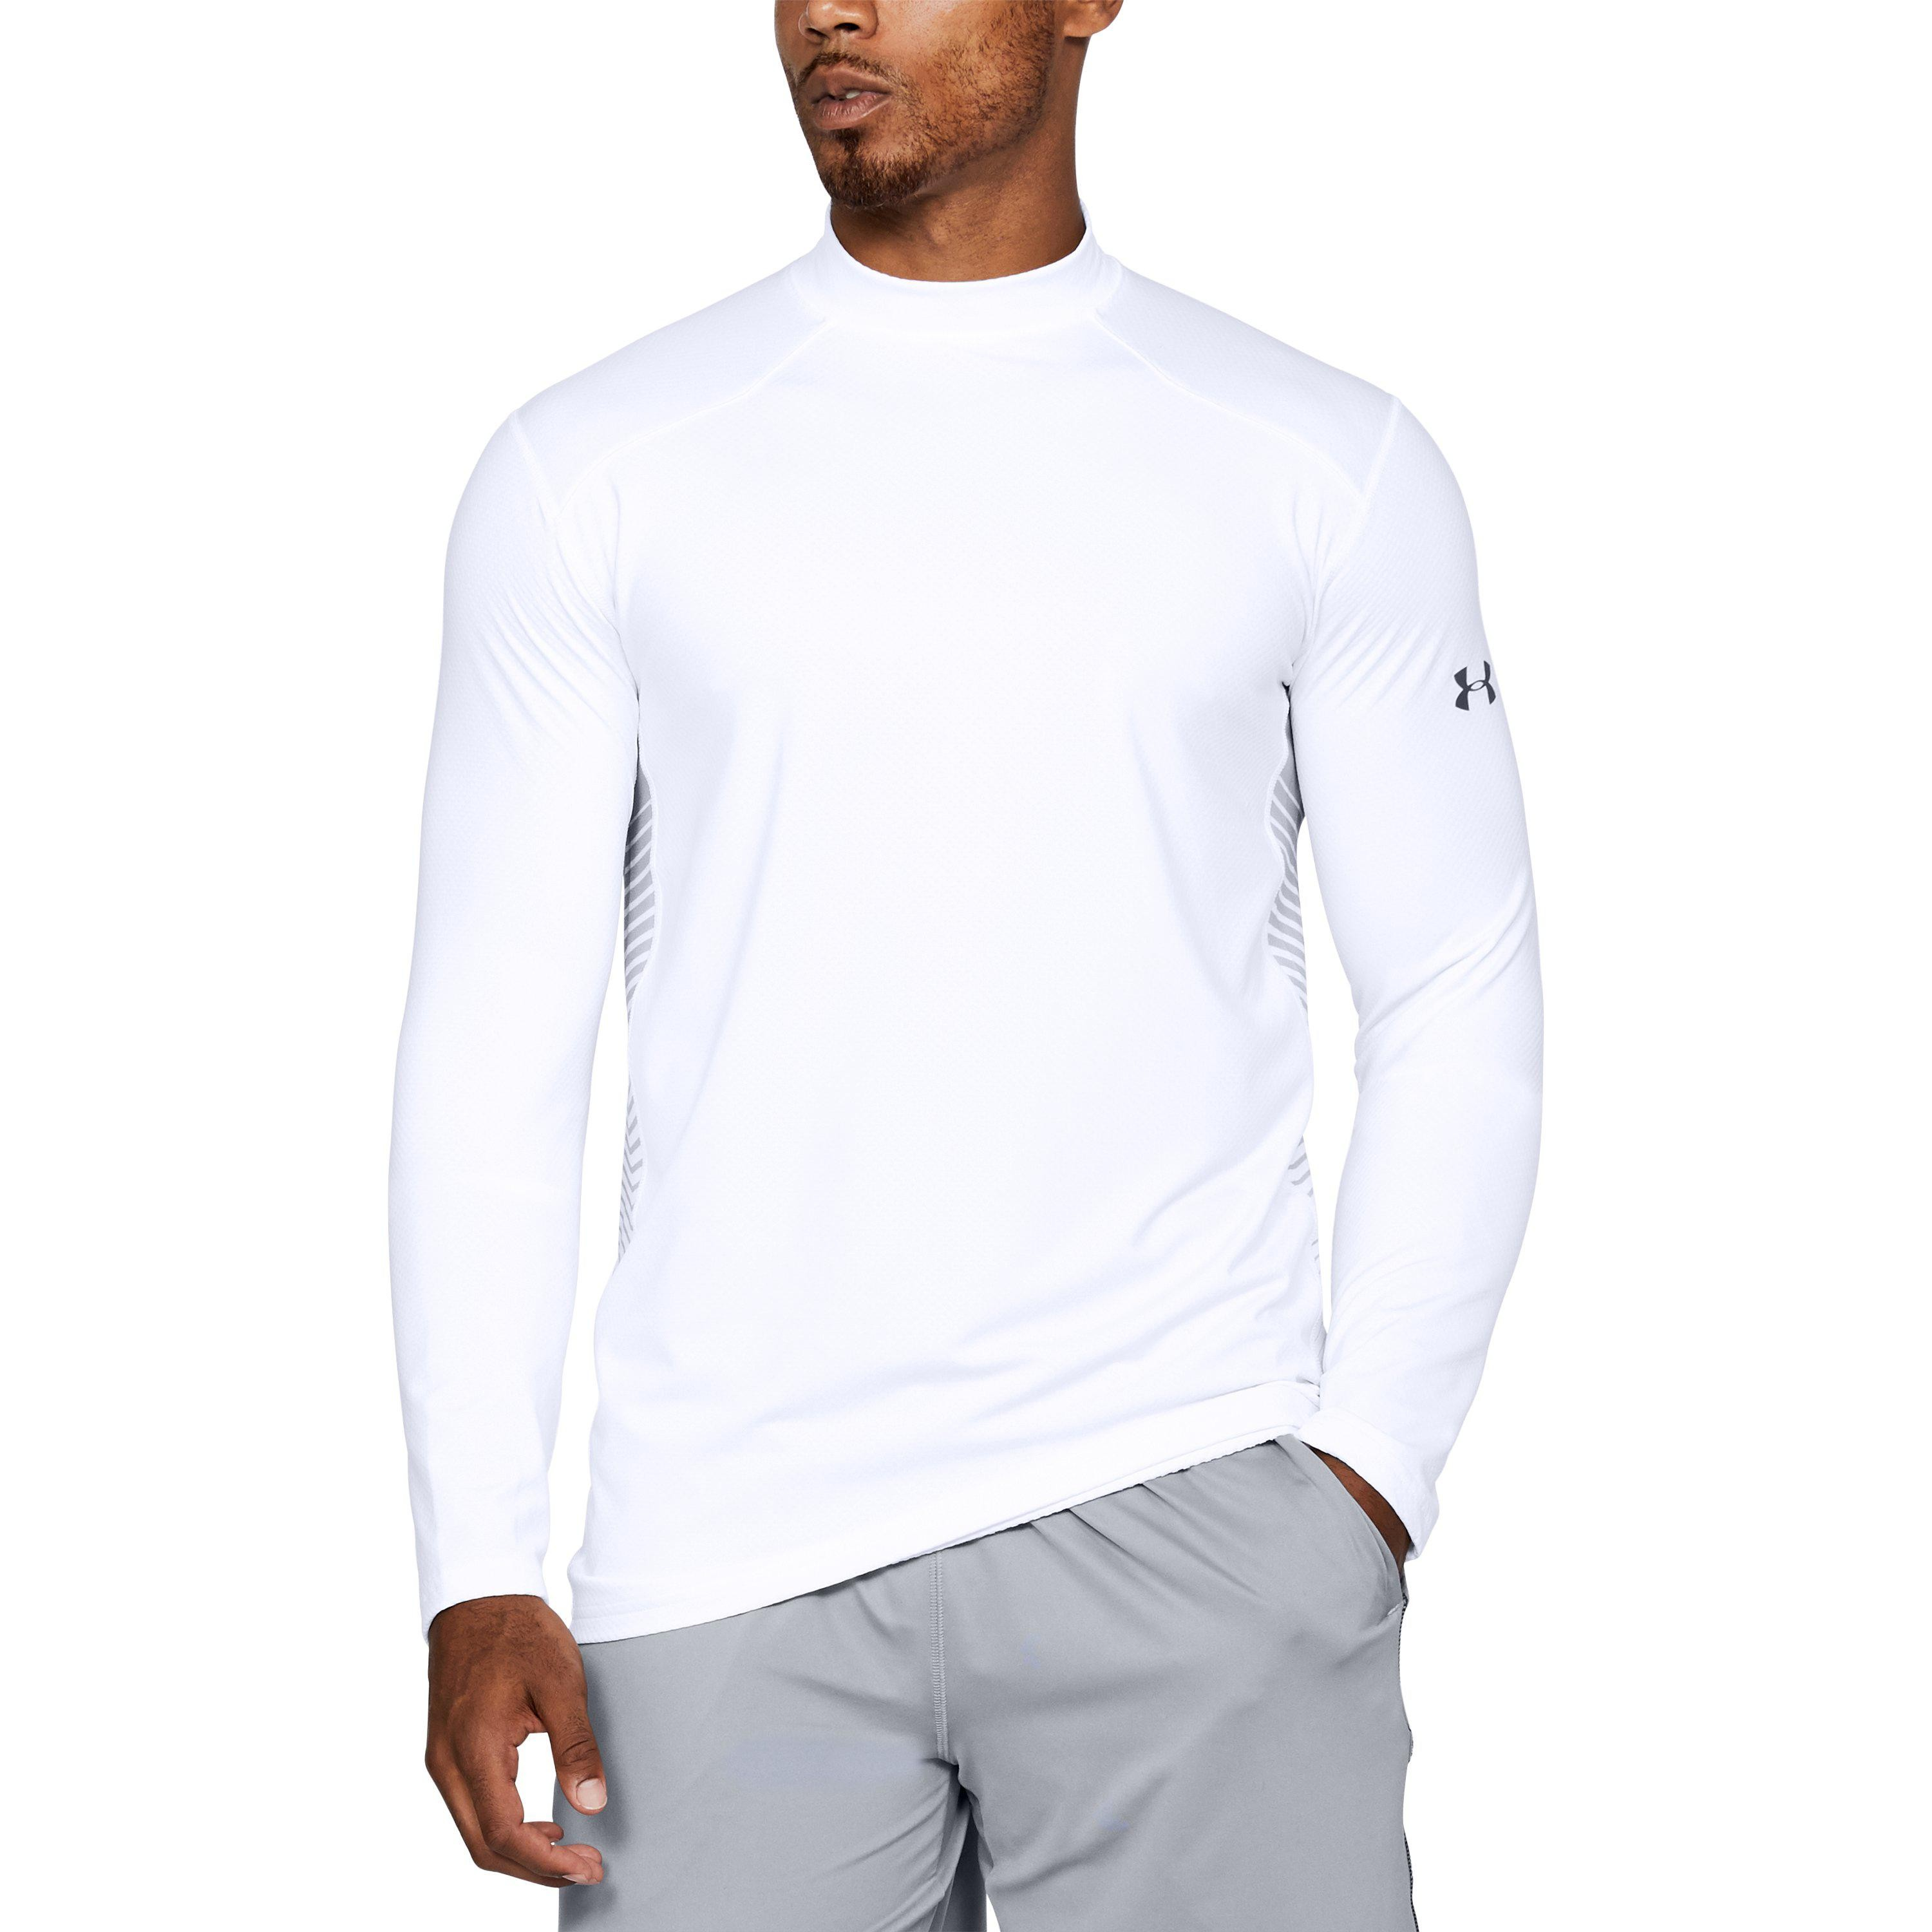 Under Armour Mens CoolGear Reactor Long Sleeve T Shirt Baselayer Top Compression